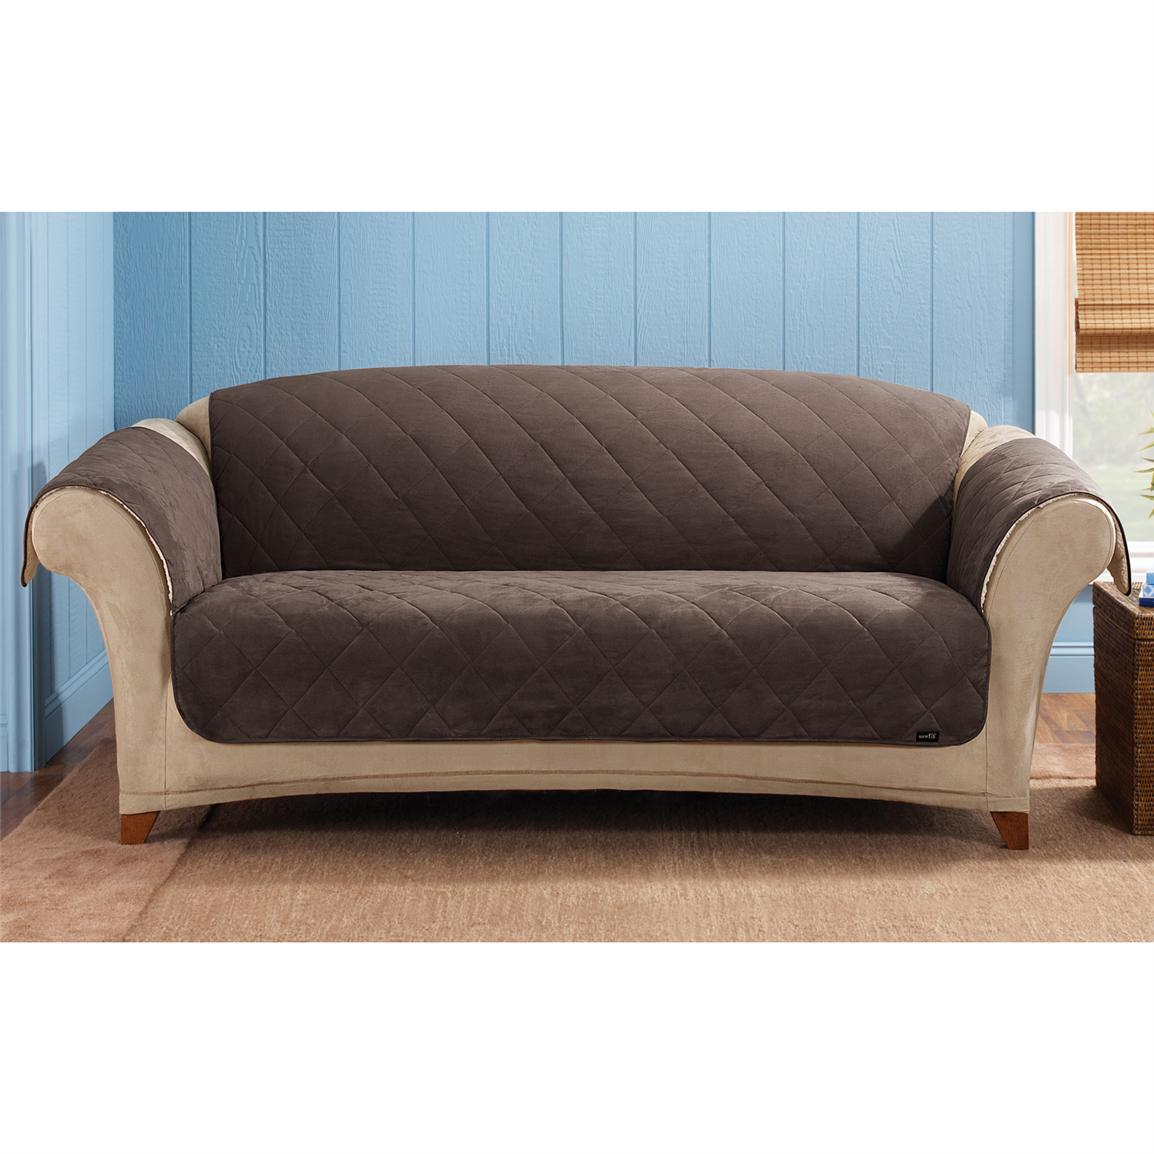 Sure Fit Reversible Suede Sherpa Sofa Pet Cover 292849